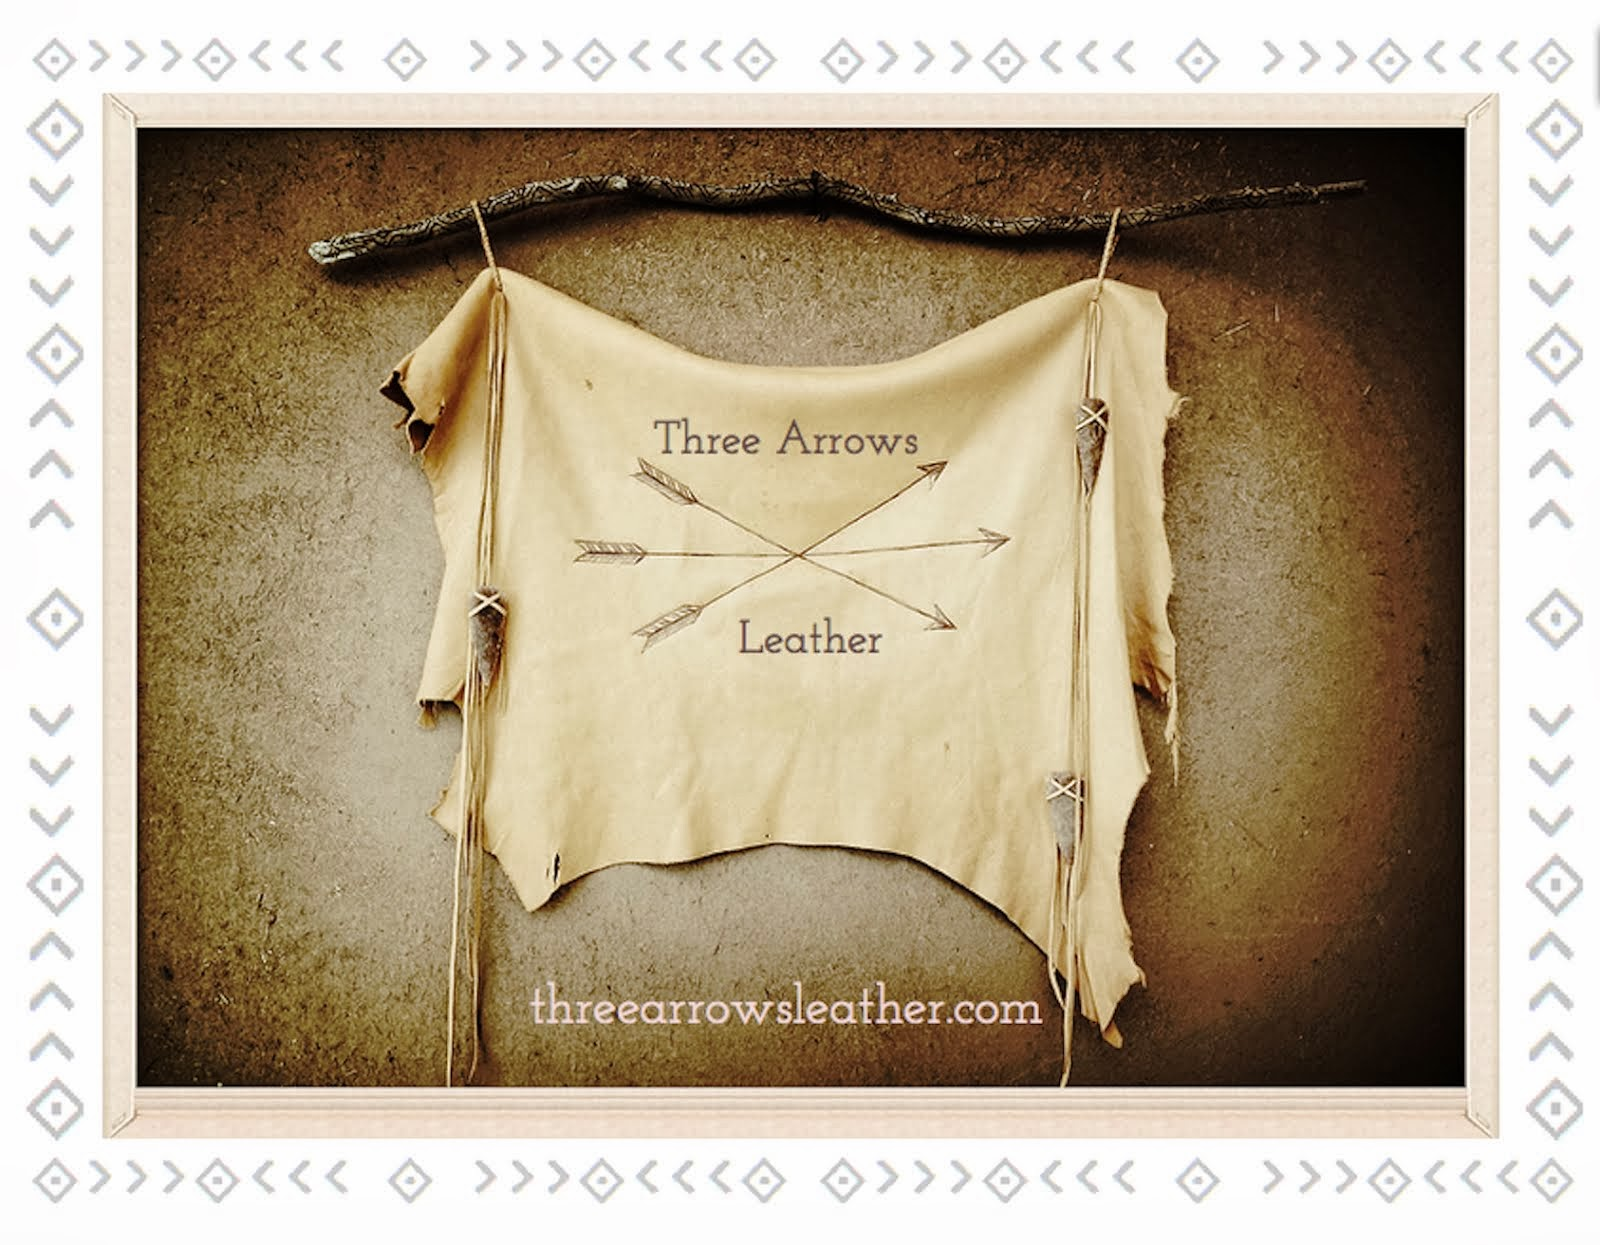 Shop Three Arrows Leather